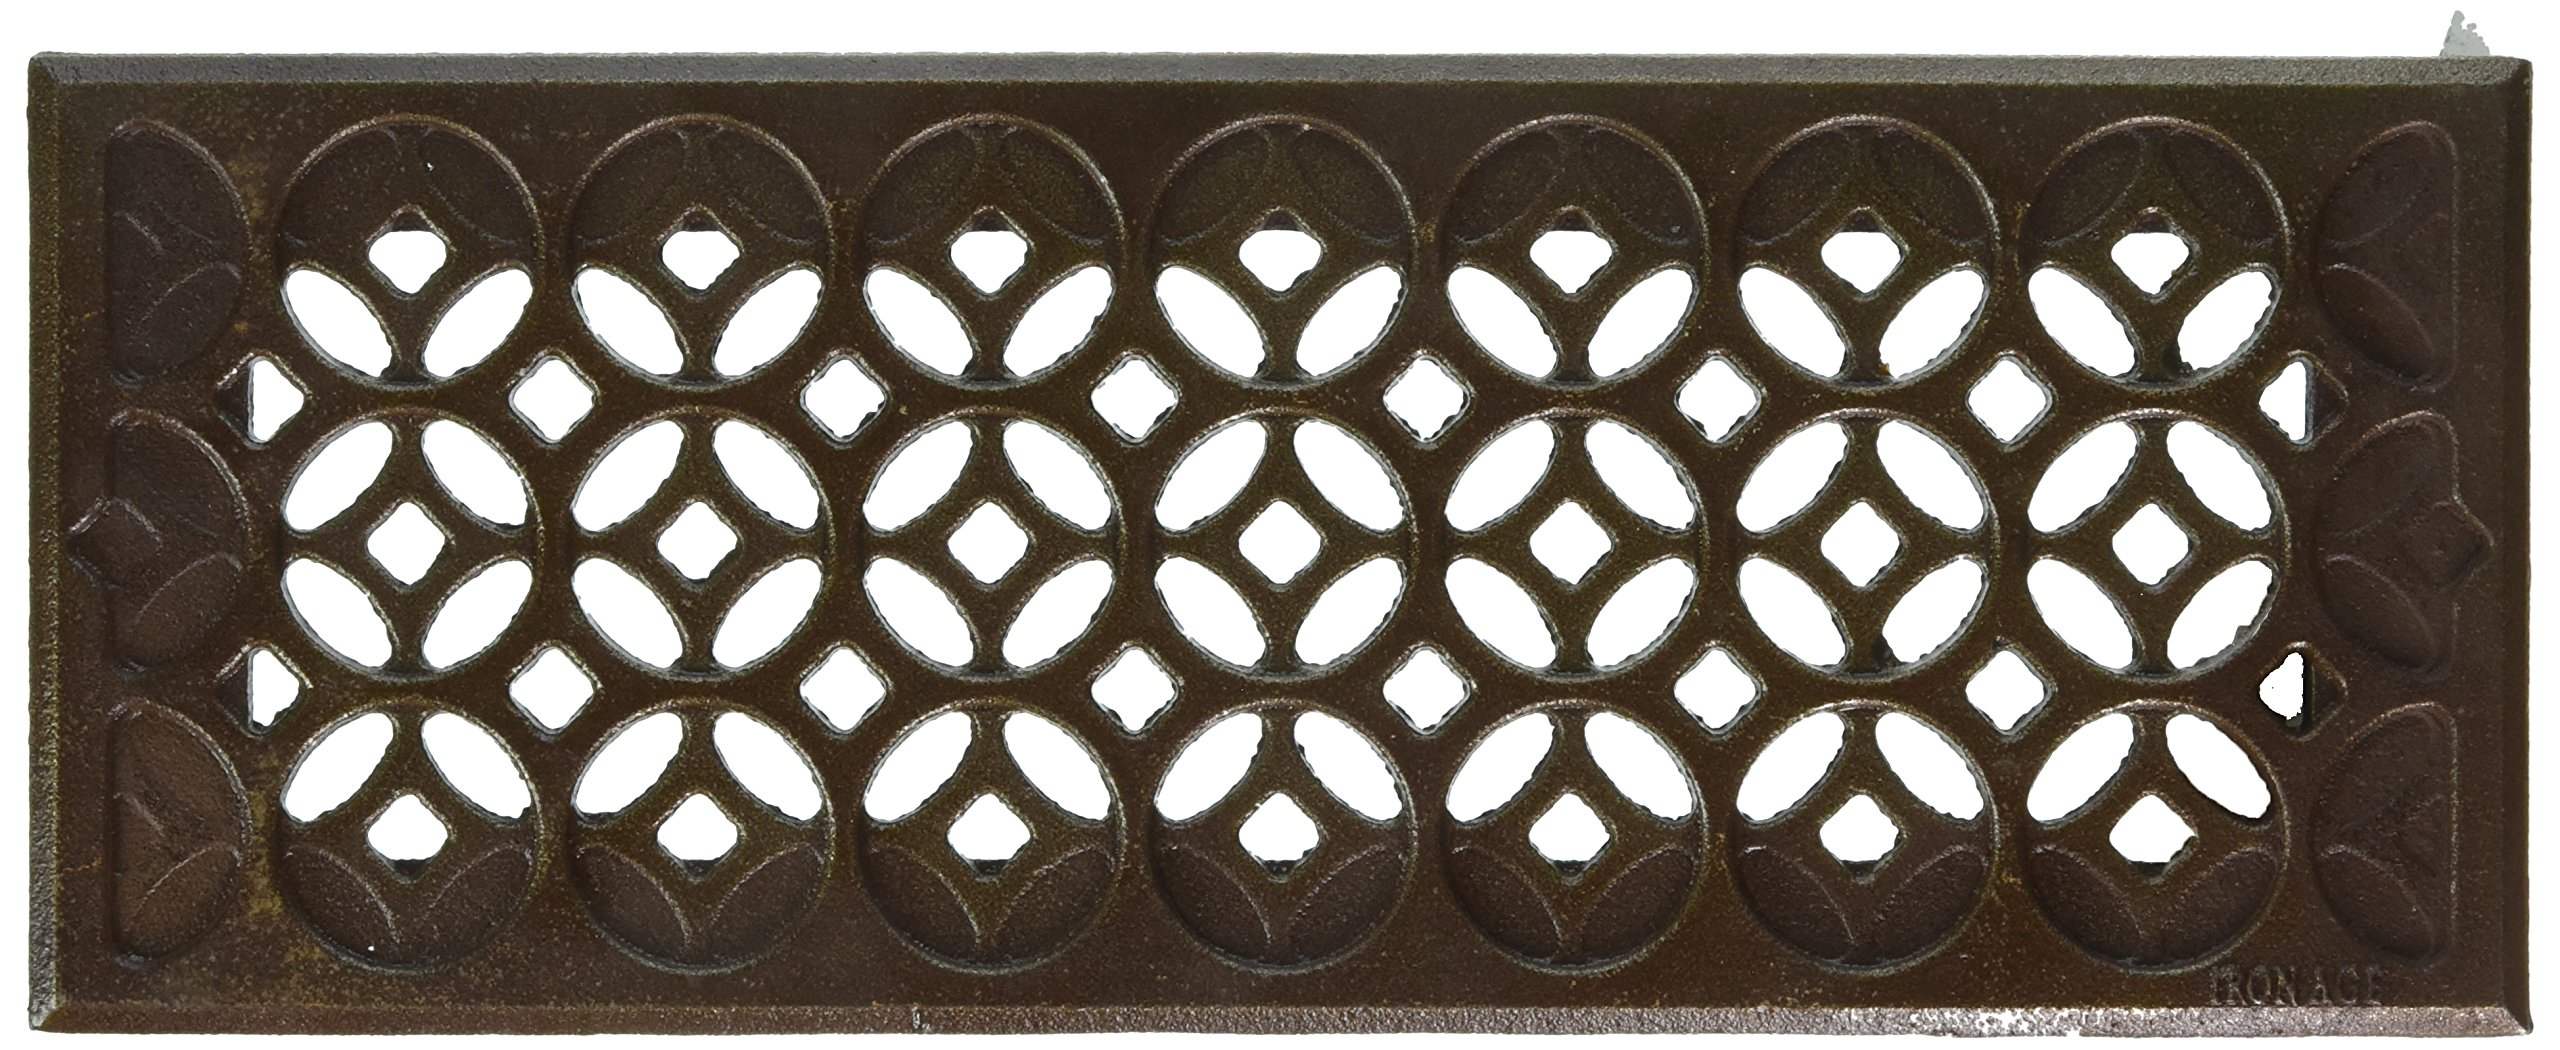 Iron Age Designs Interlaken Home Register Cover - Multiple sizes and finishes